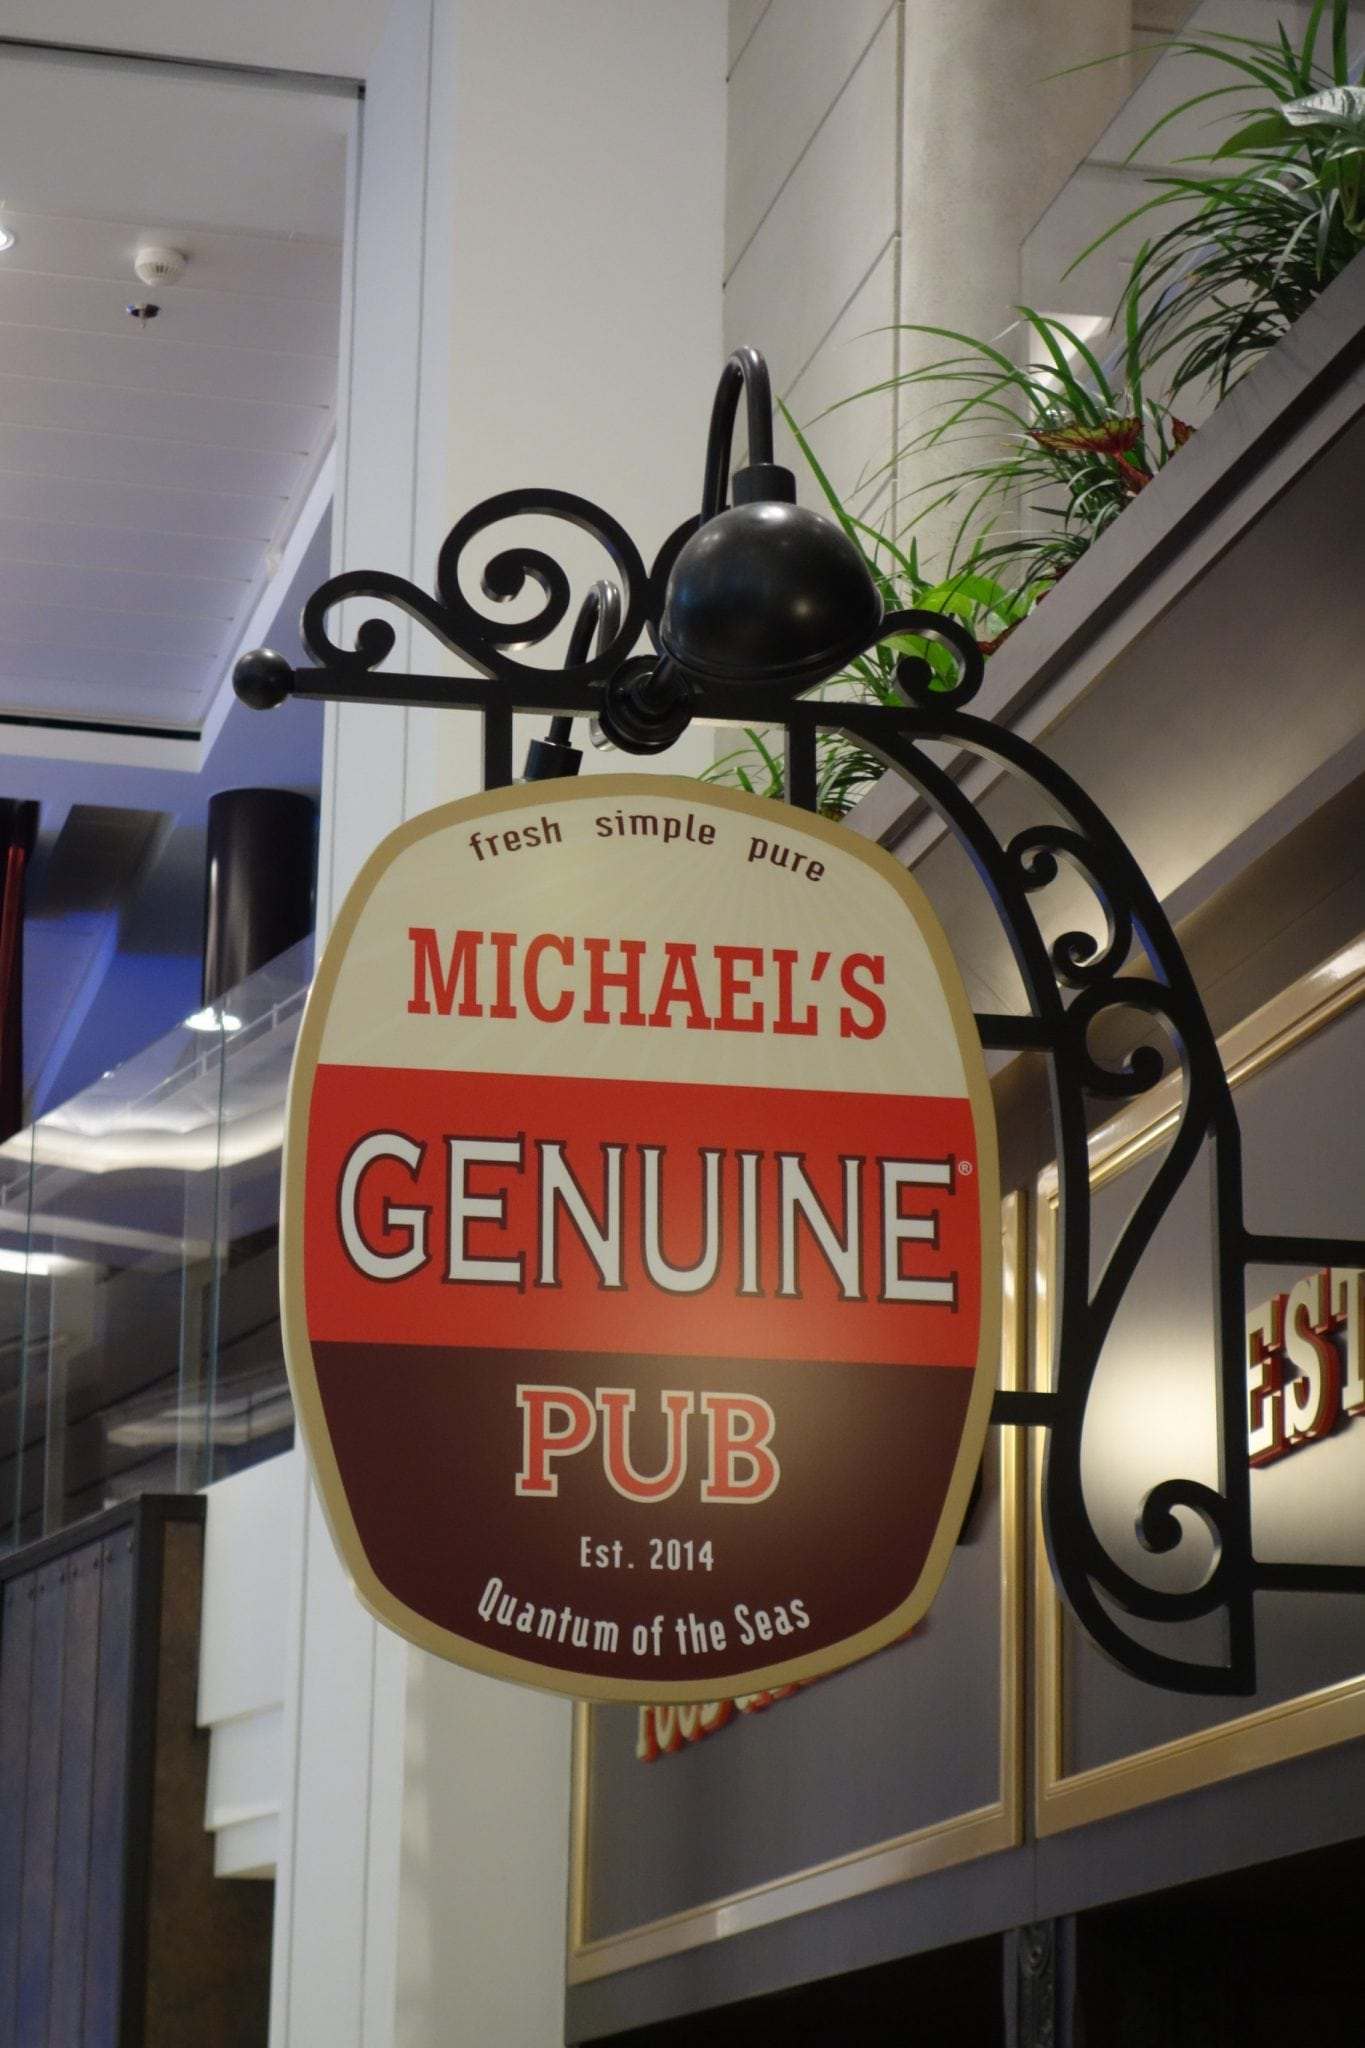 Quantum of the Seas Michael's Genuine Pub